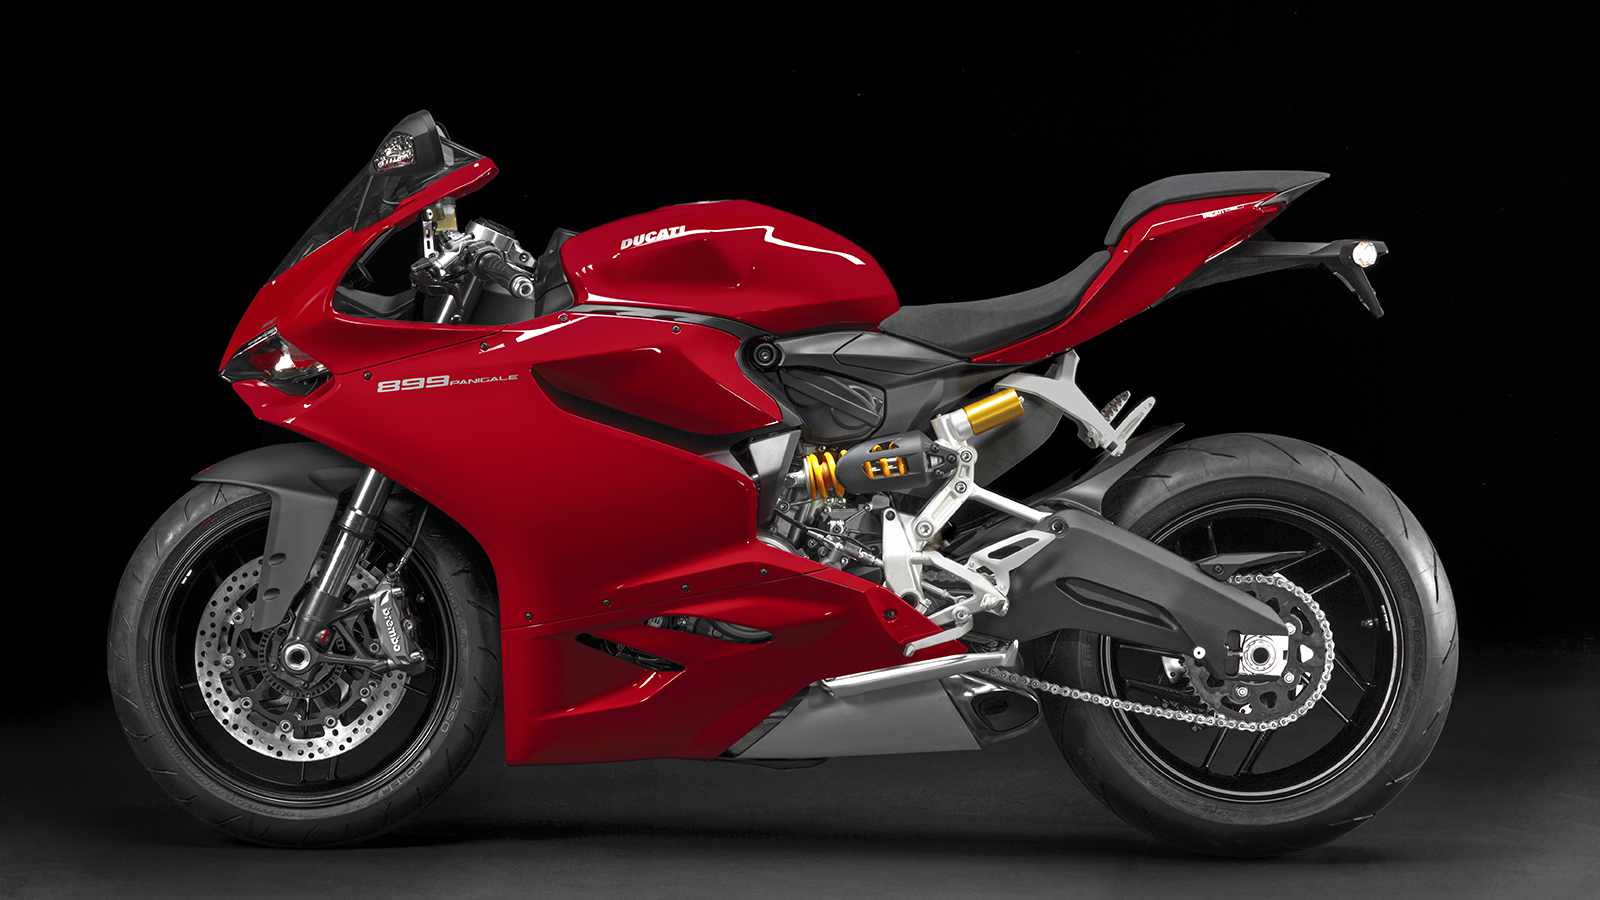 2014 ducati 899 panigale wallpapers hd wallpapers wide. Black Bedroom Furniture Sets. Home Design Ideas